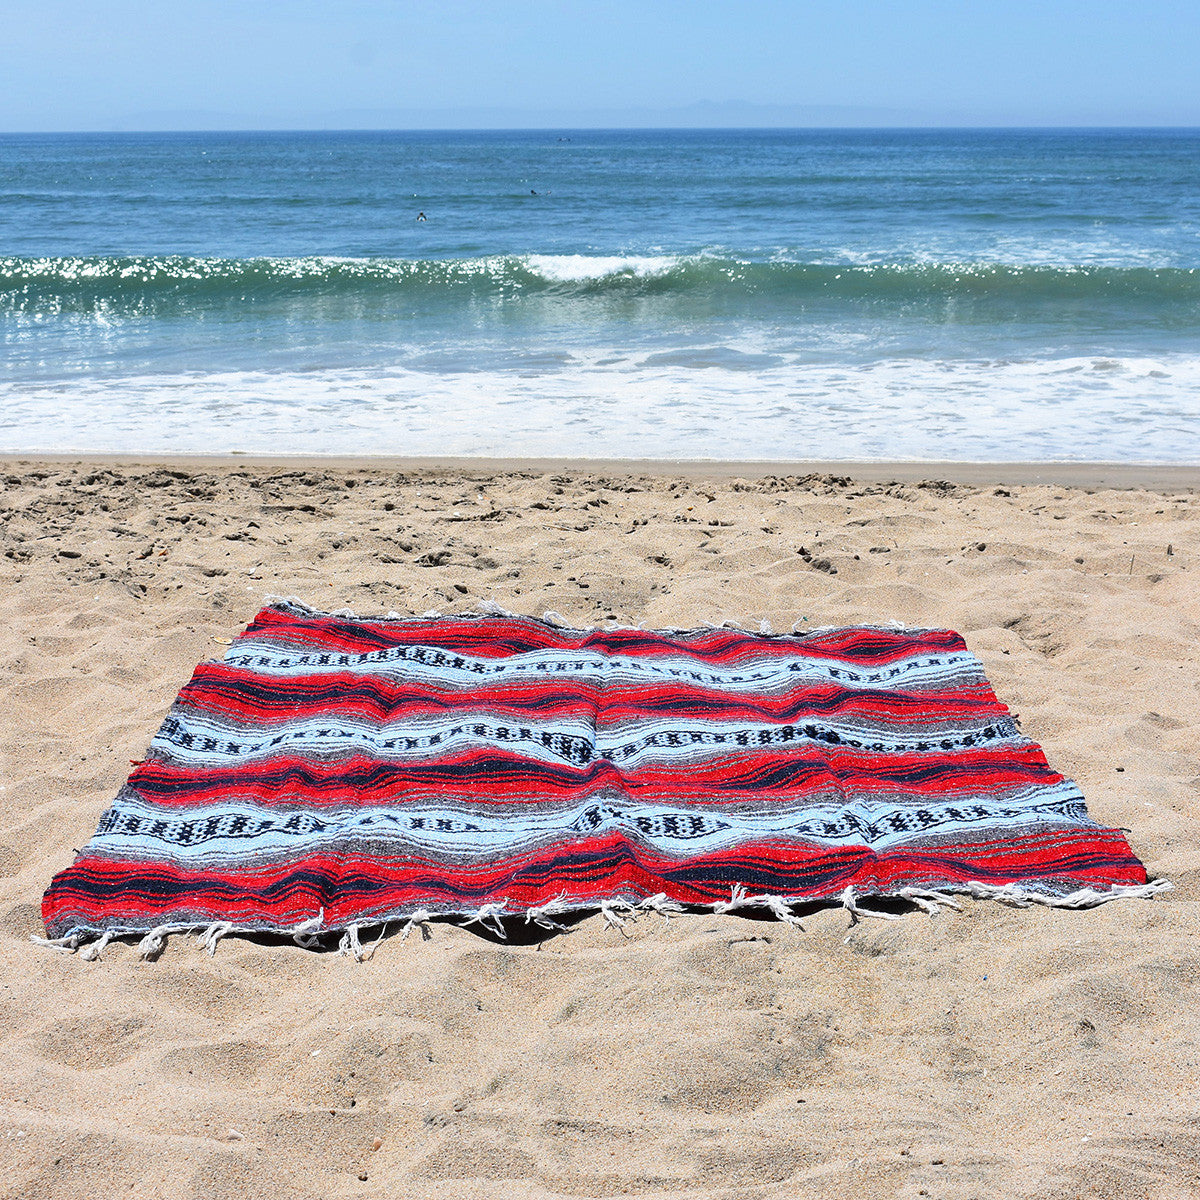 Kick summer up a notch with a boho beach blanket - Wild at Heart Bohemian Fiesta Blanket.